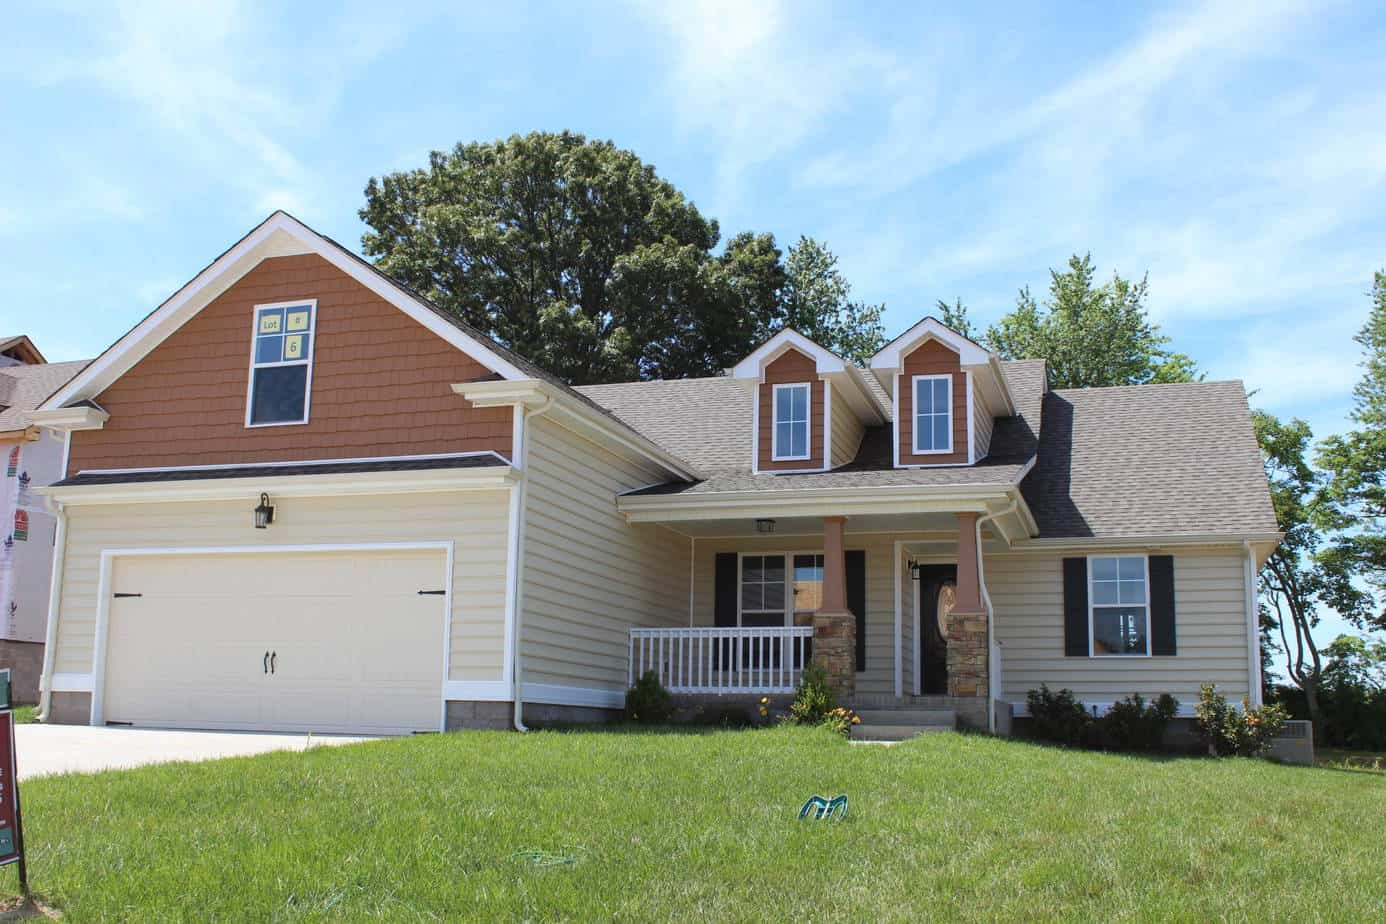 Clarksville neighborhoods and subdivisions, homes for sale in Clarksville TN